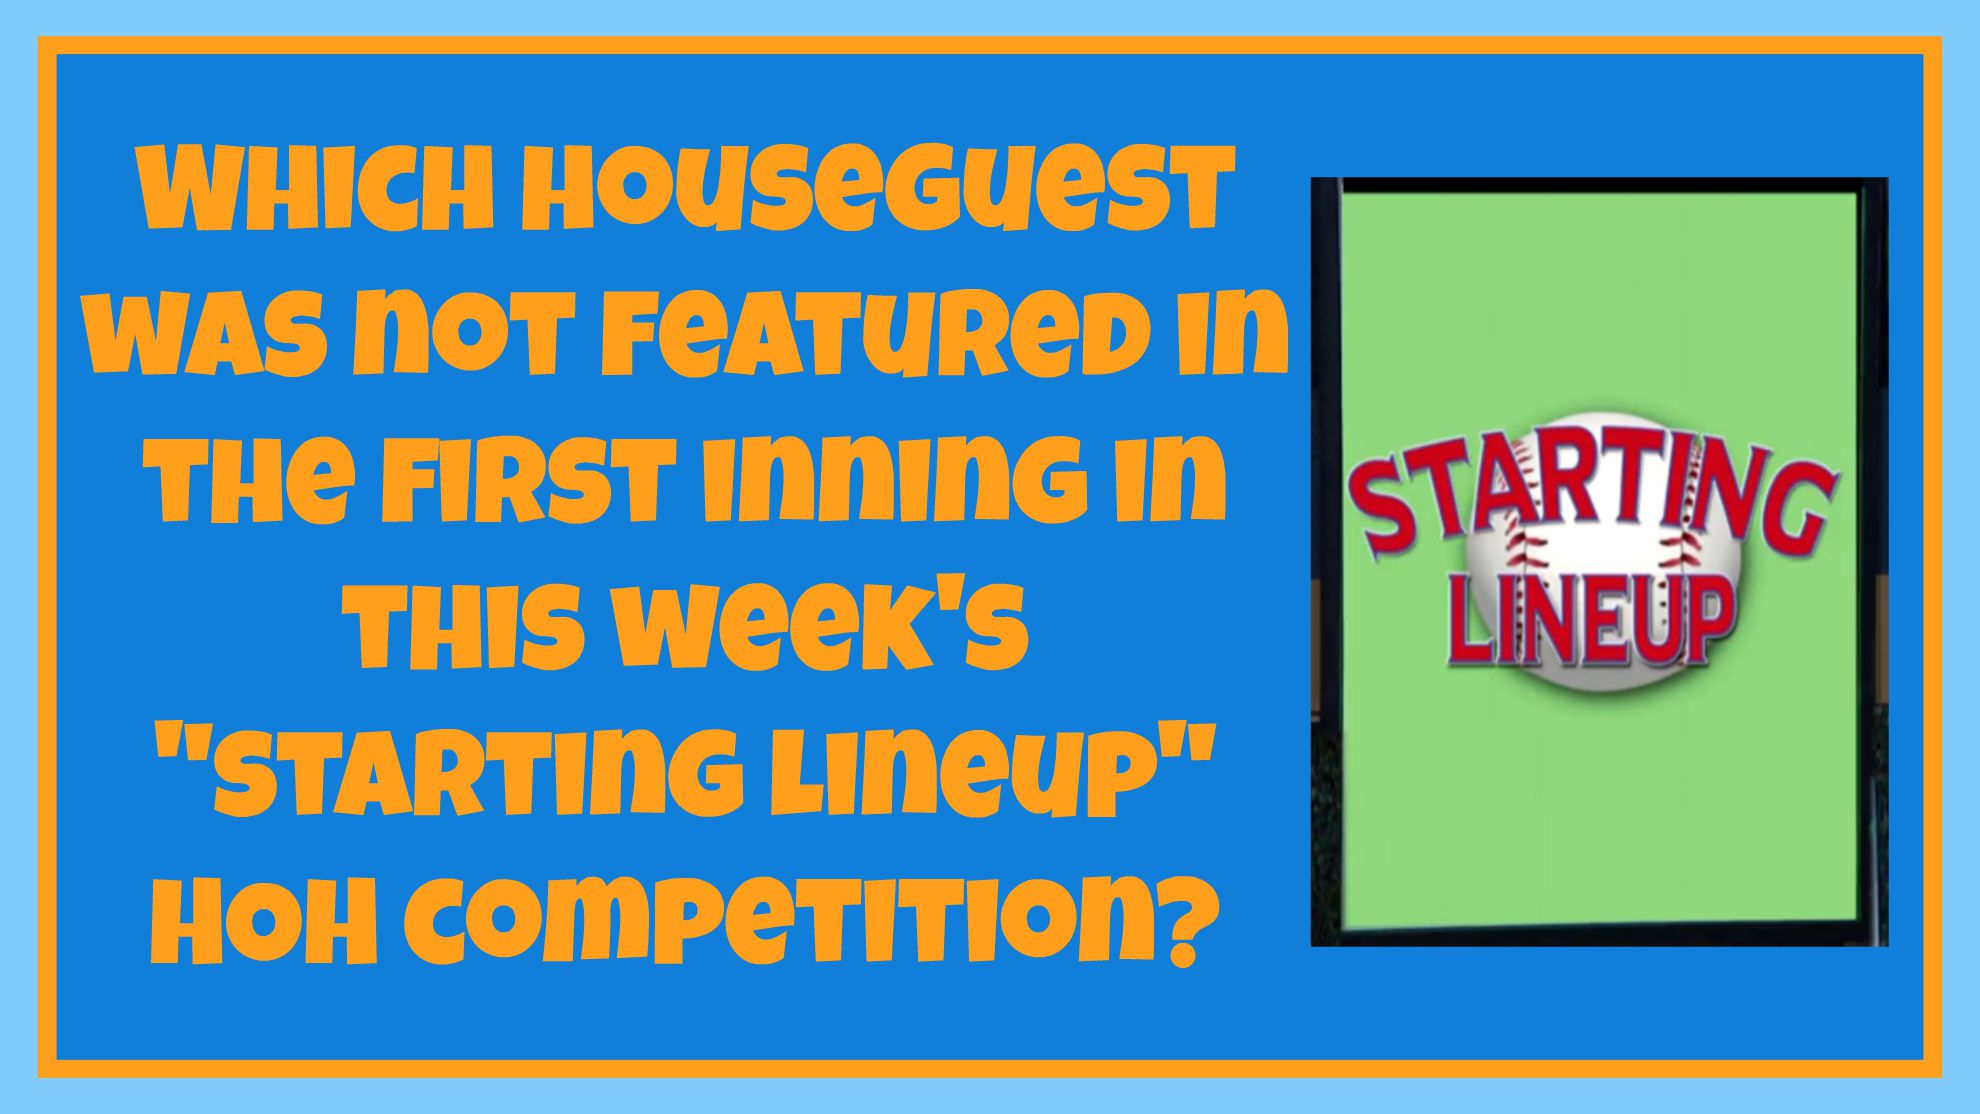 Which Houseguest was not featured in the first inning in this week's